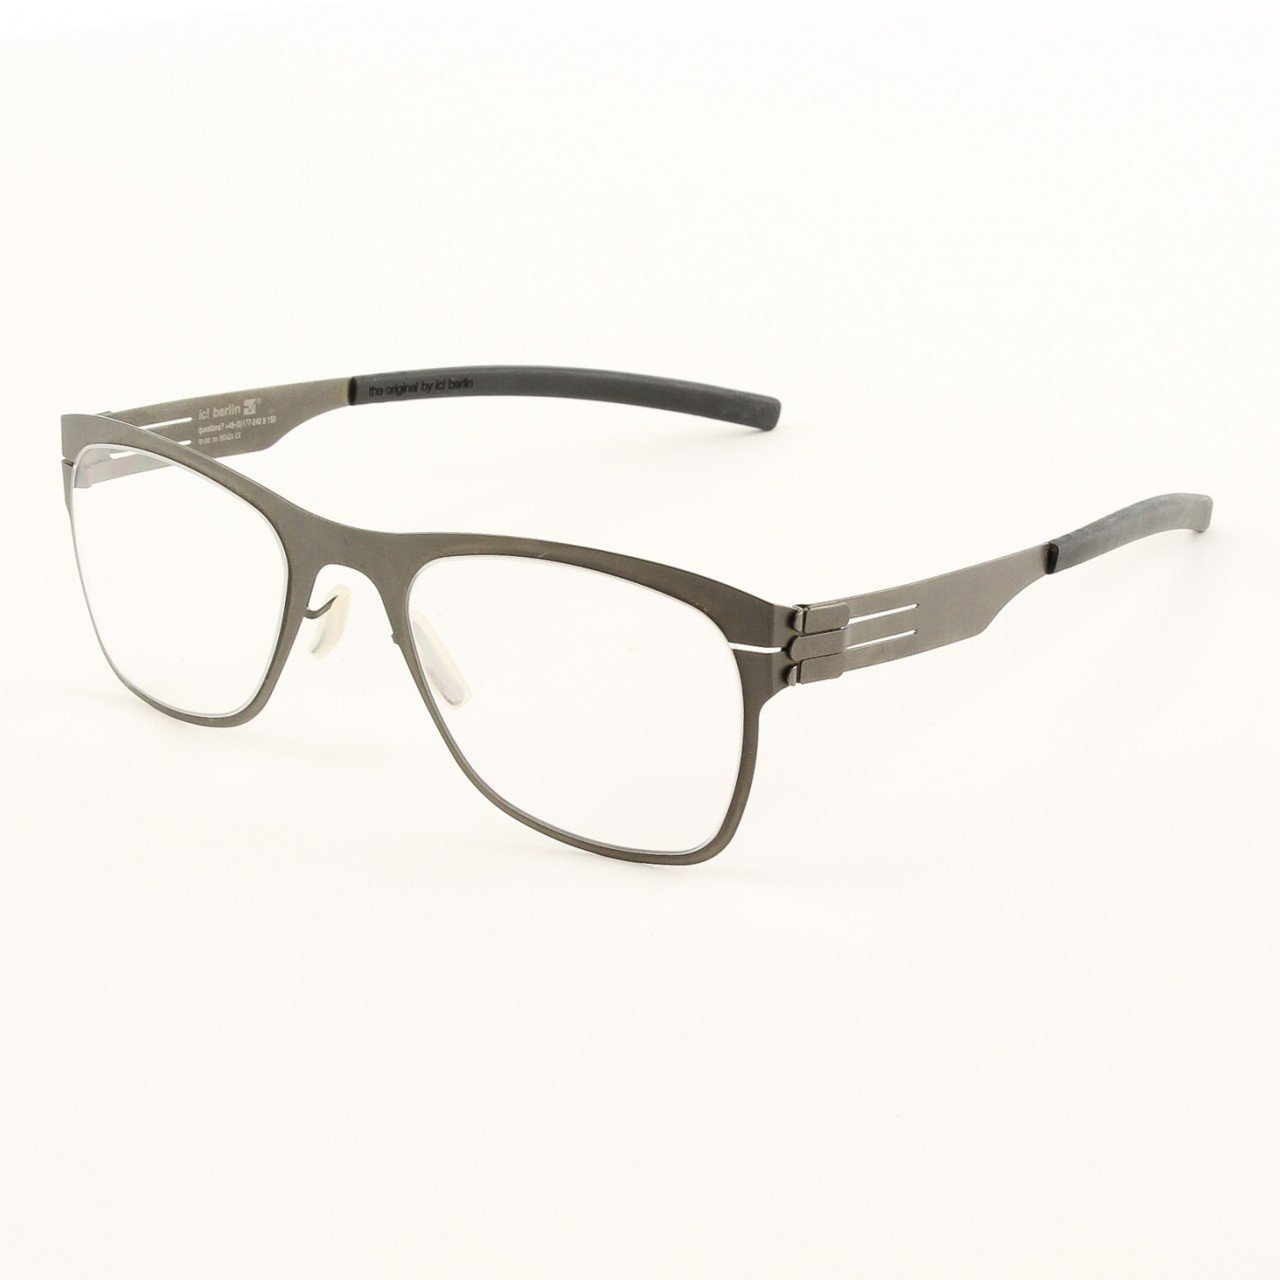 ic! Berlin Capricorno Graphite Eyeglasses Col. Graphite with Clear Lenses